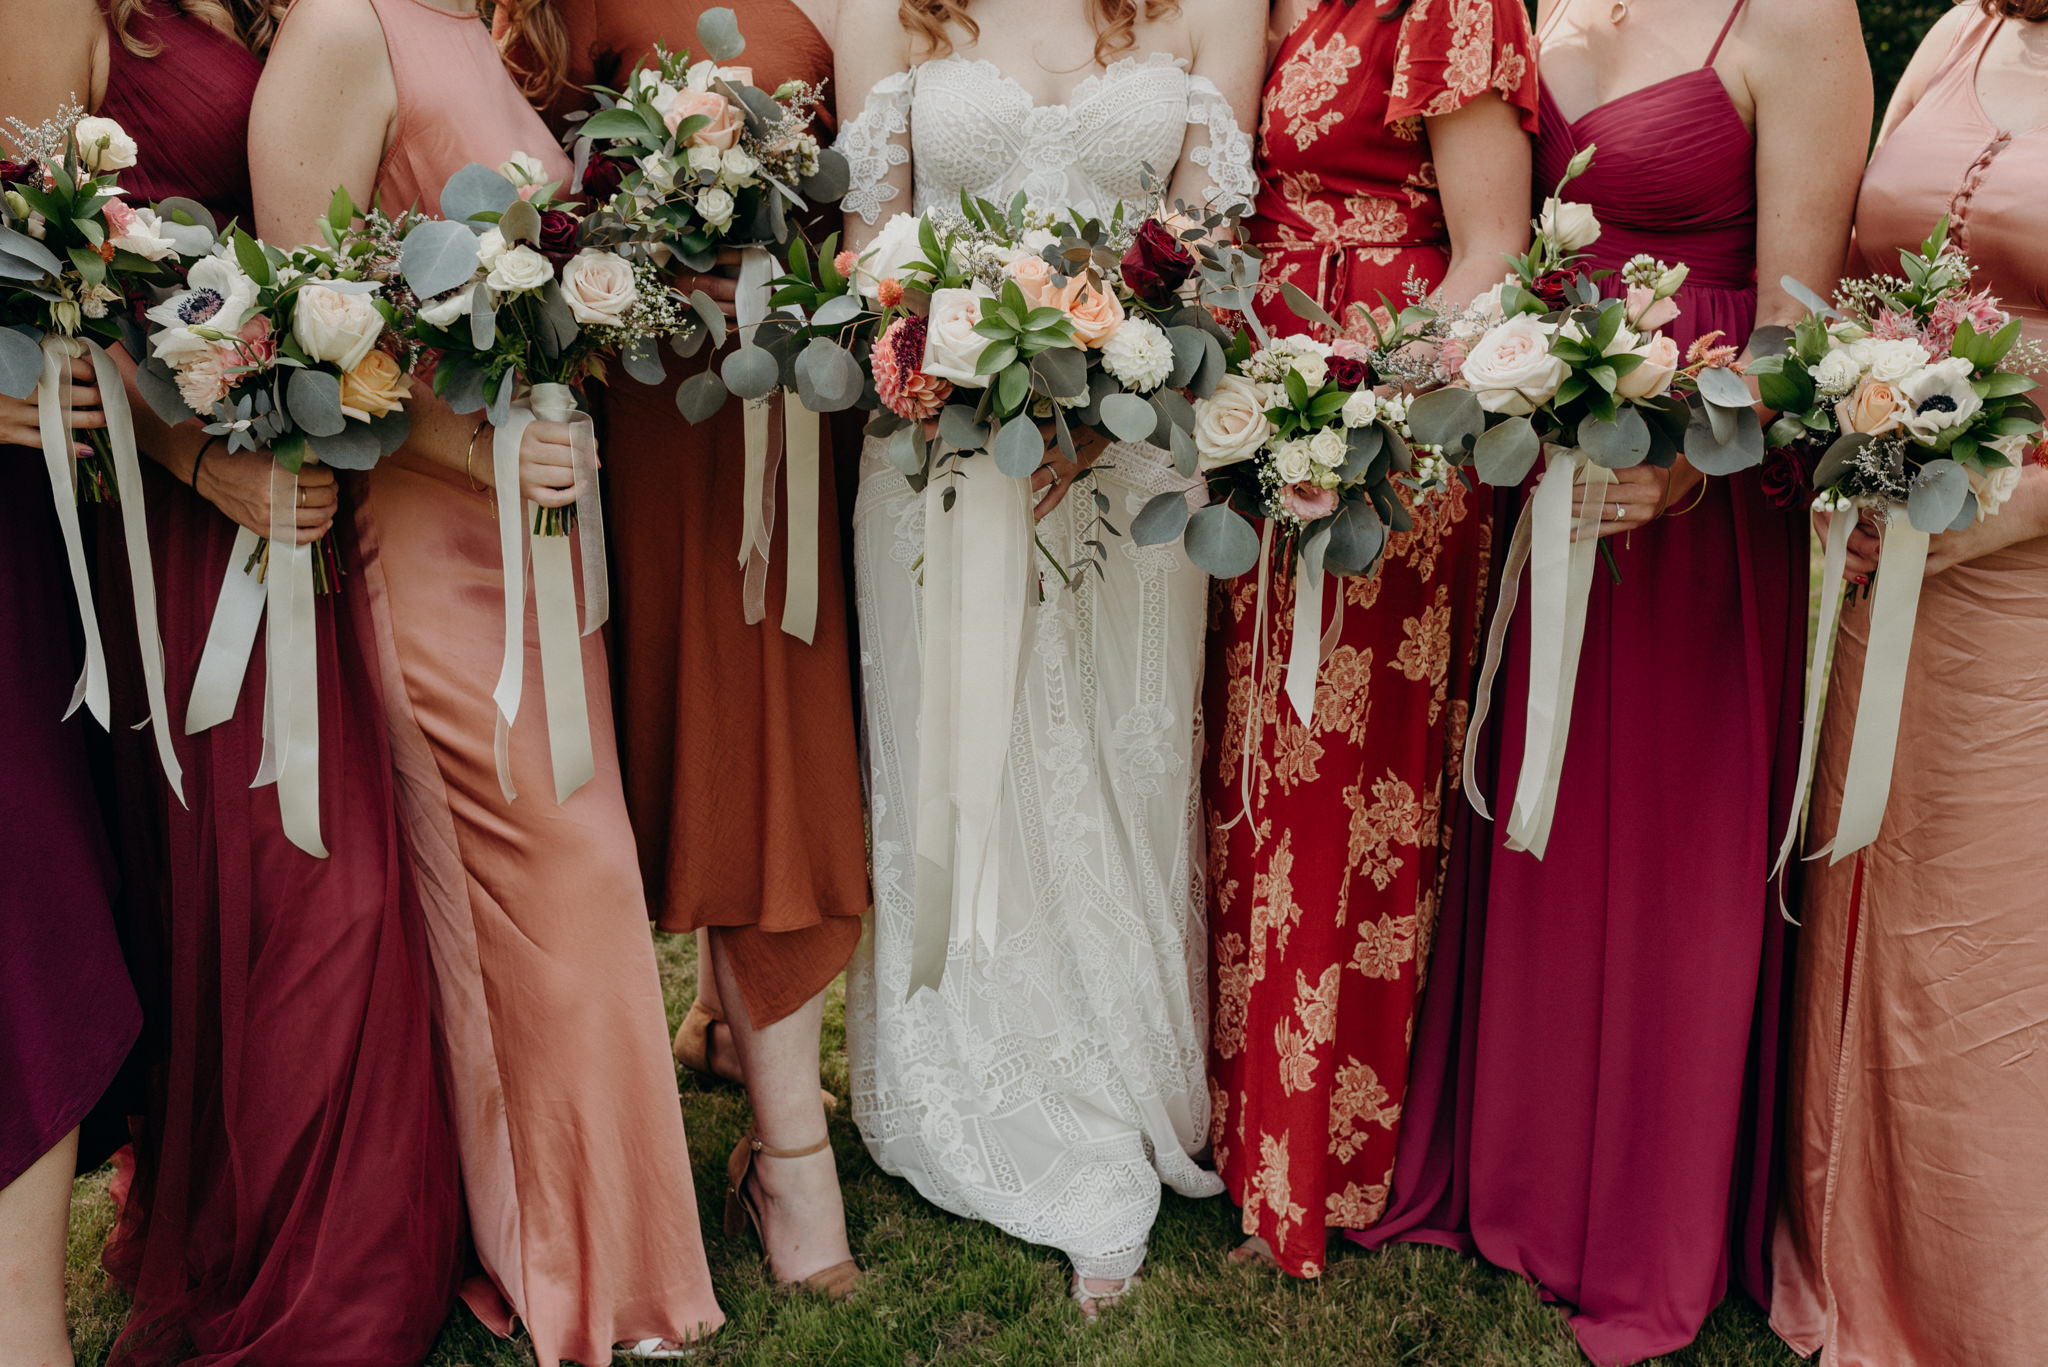 bridesmaids and bride holding bouquets